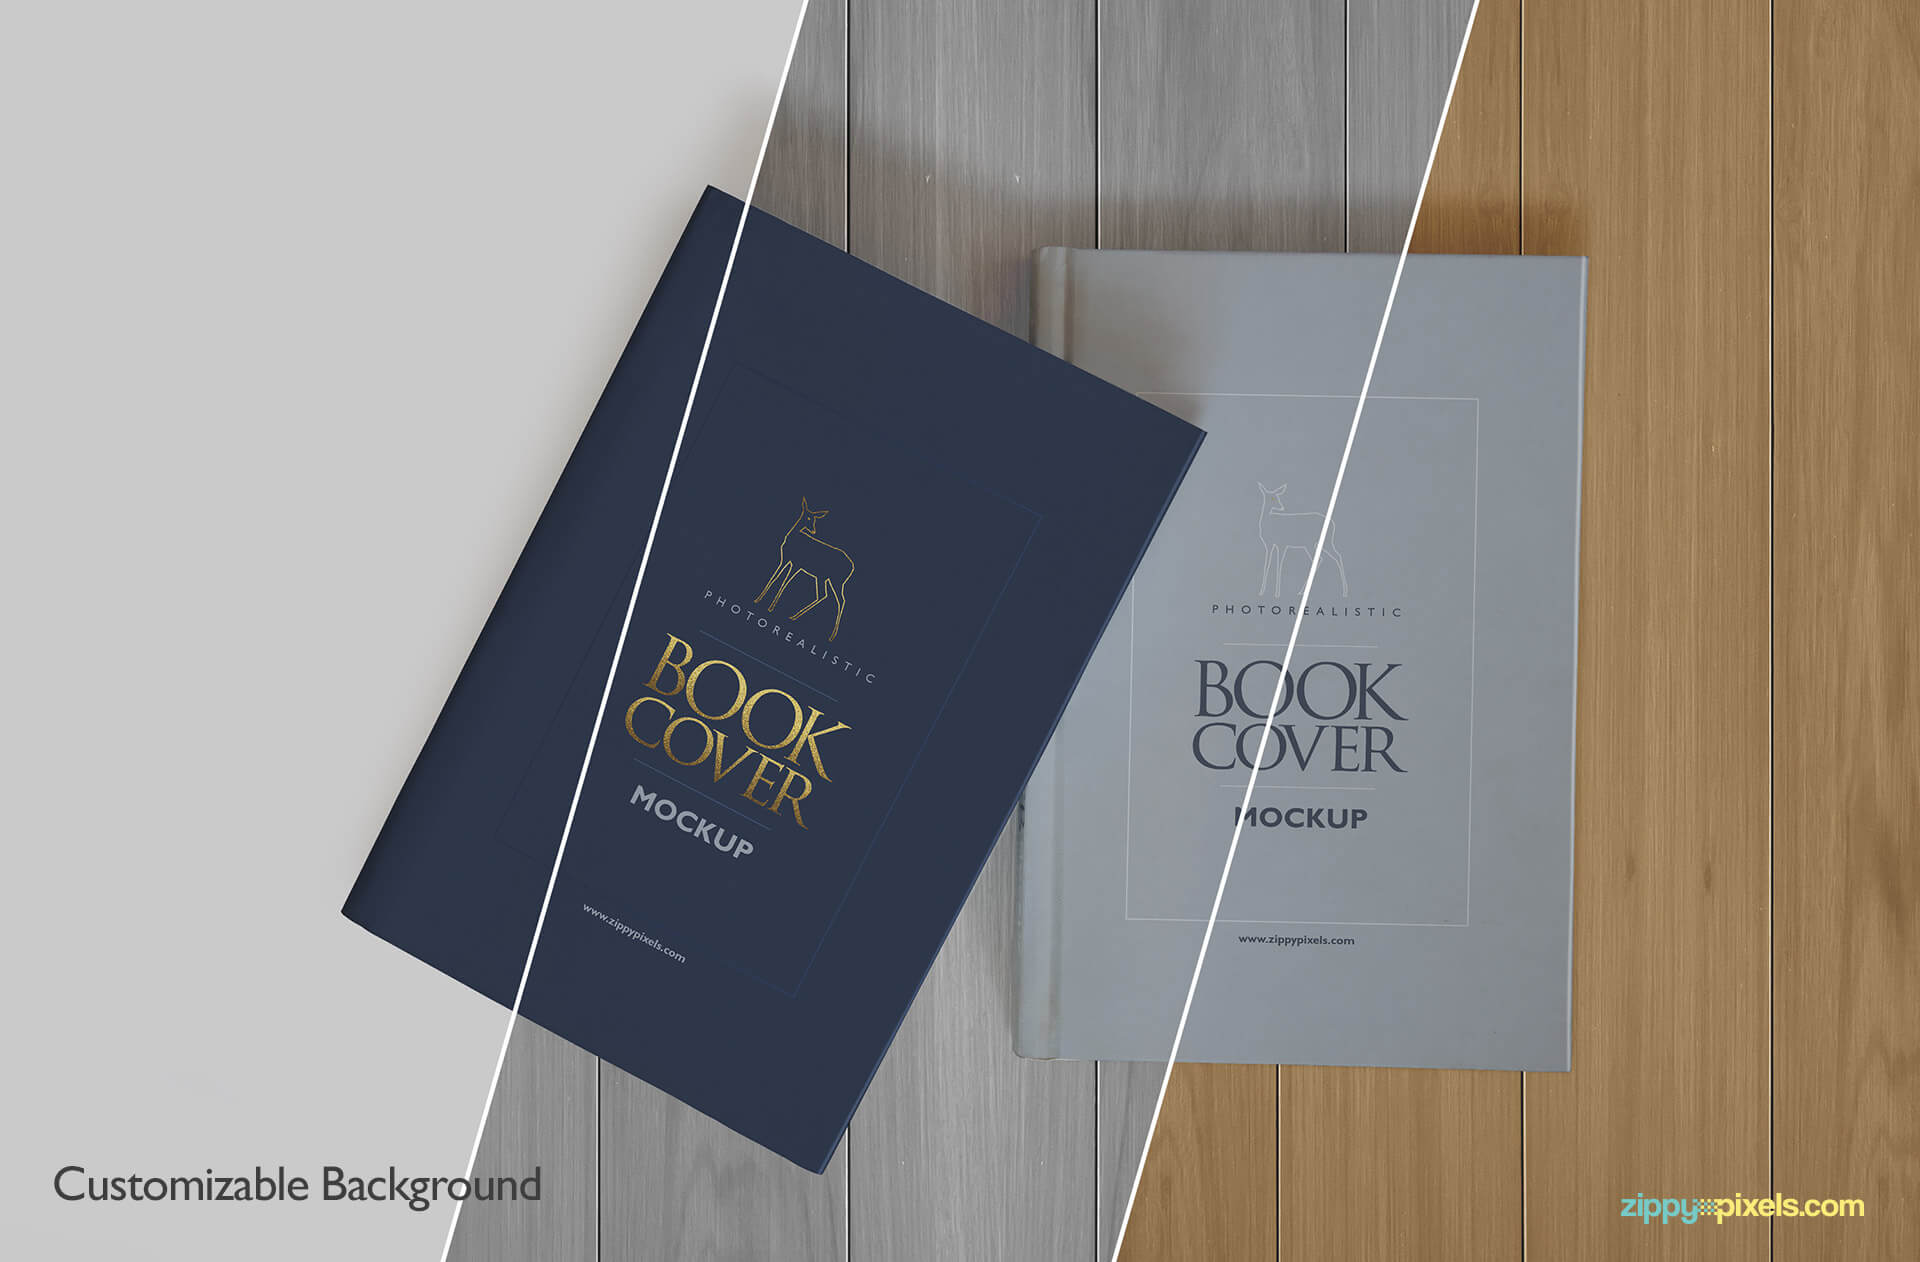 PSD hardcover book mockup wiht customizable background